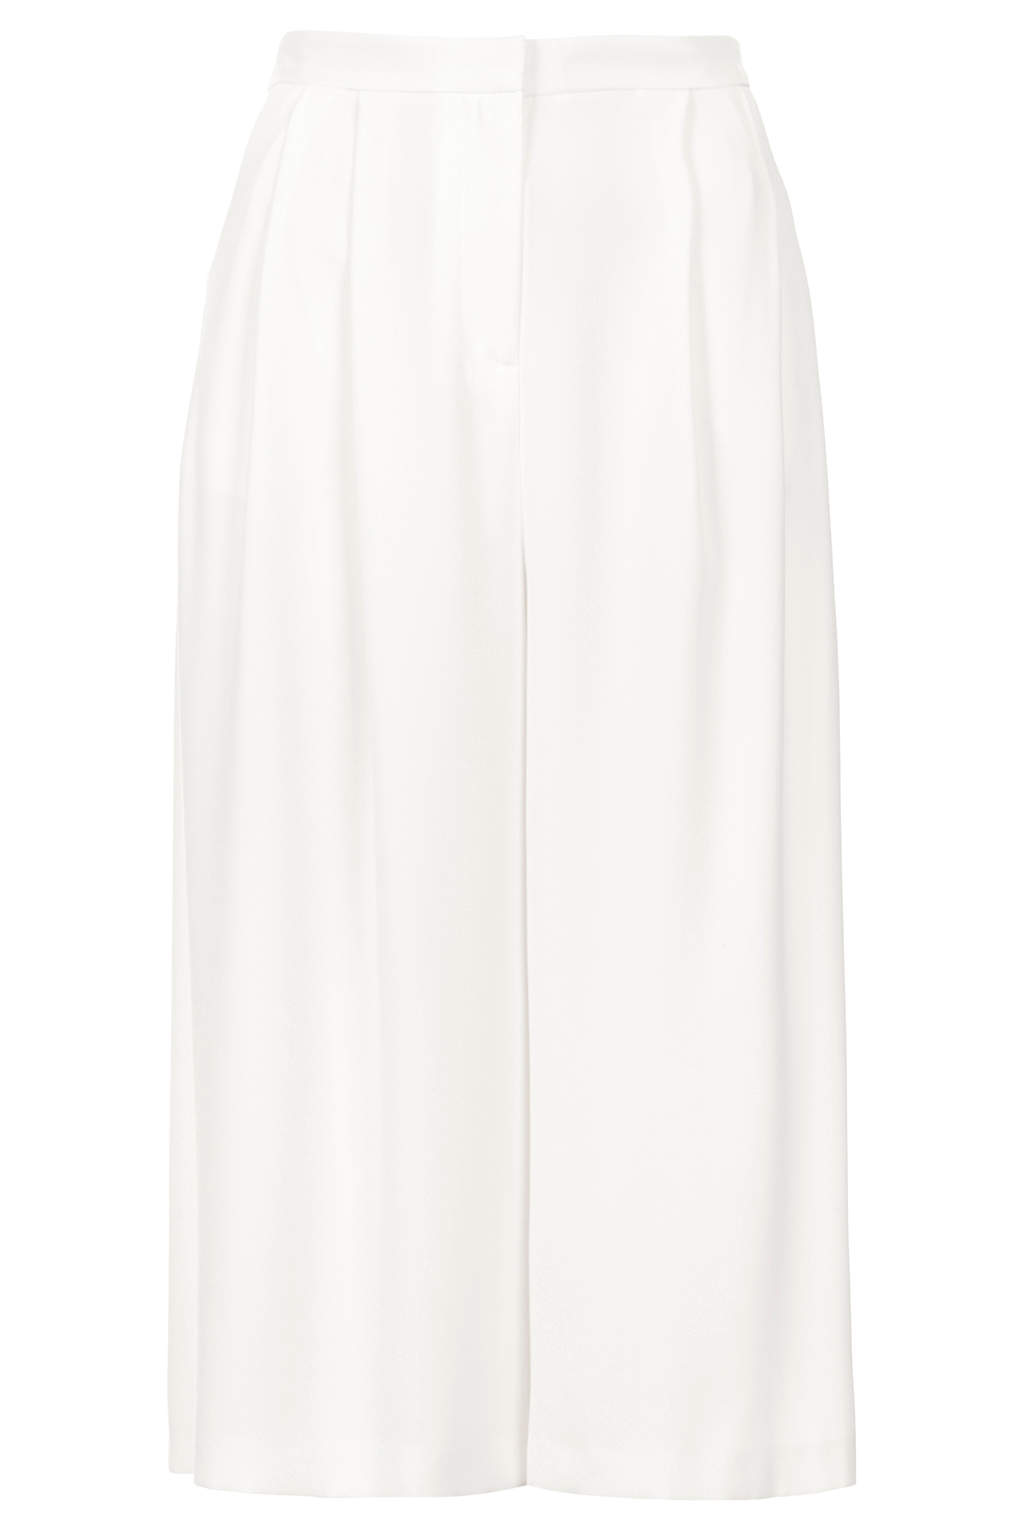 topshop white culottes